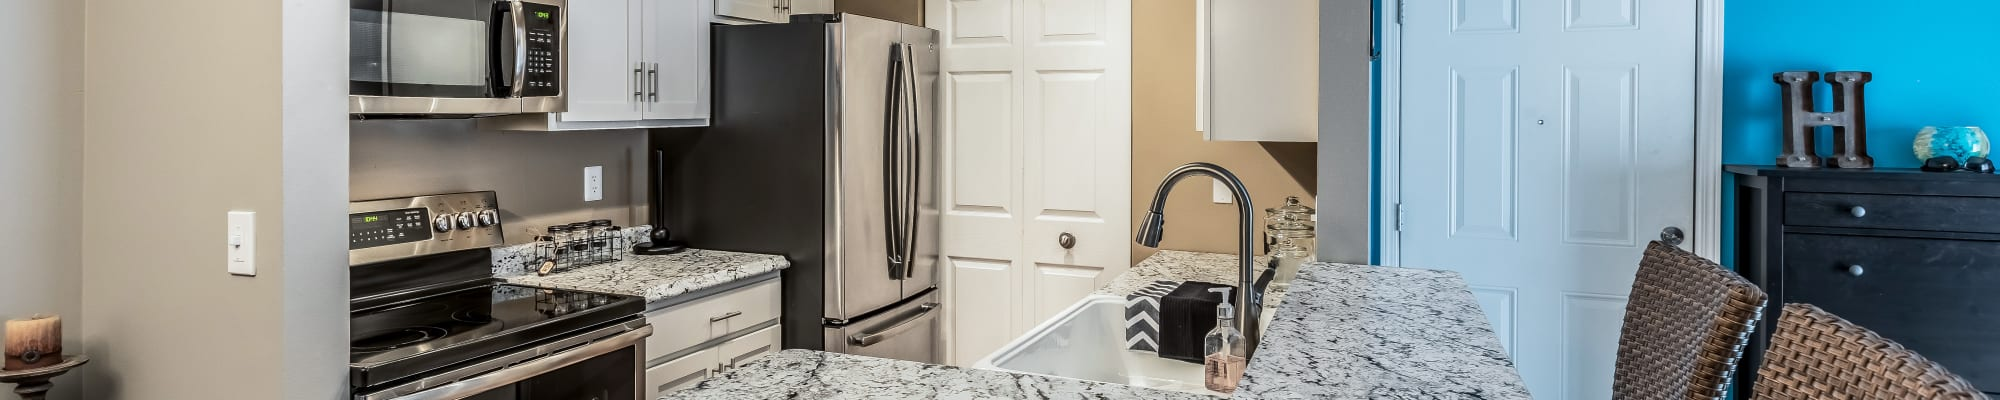 Schedule a Tour at Waters Edge Apartments in Lansing, Michigan